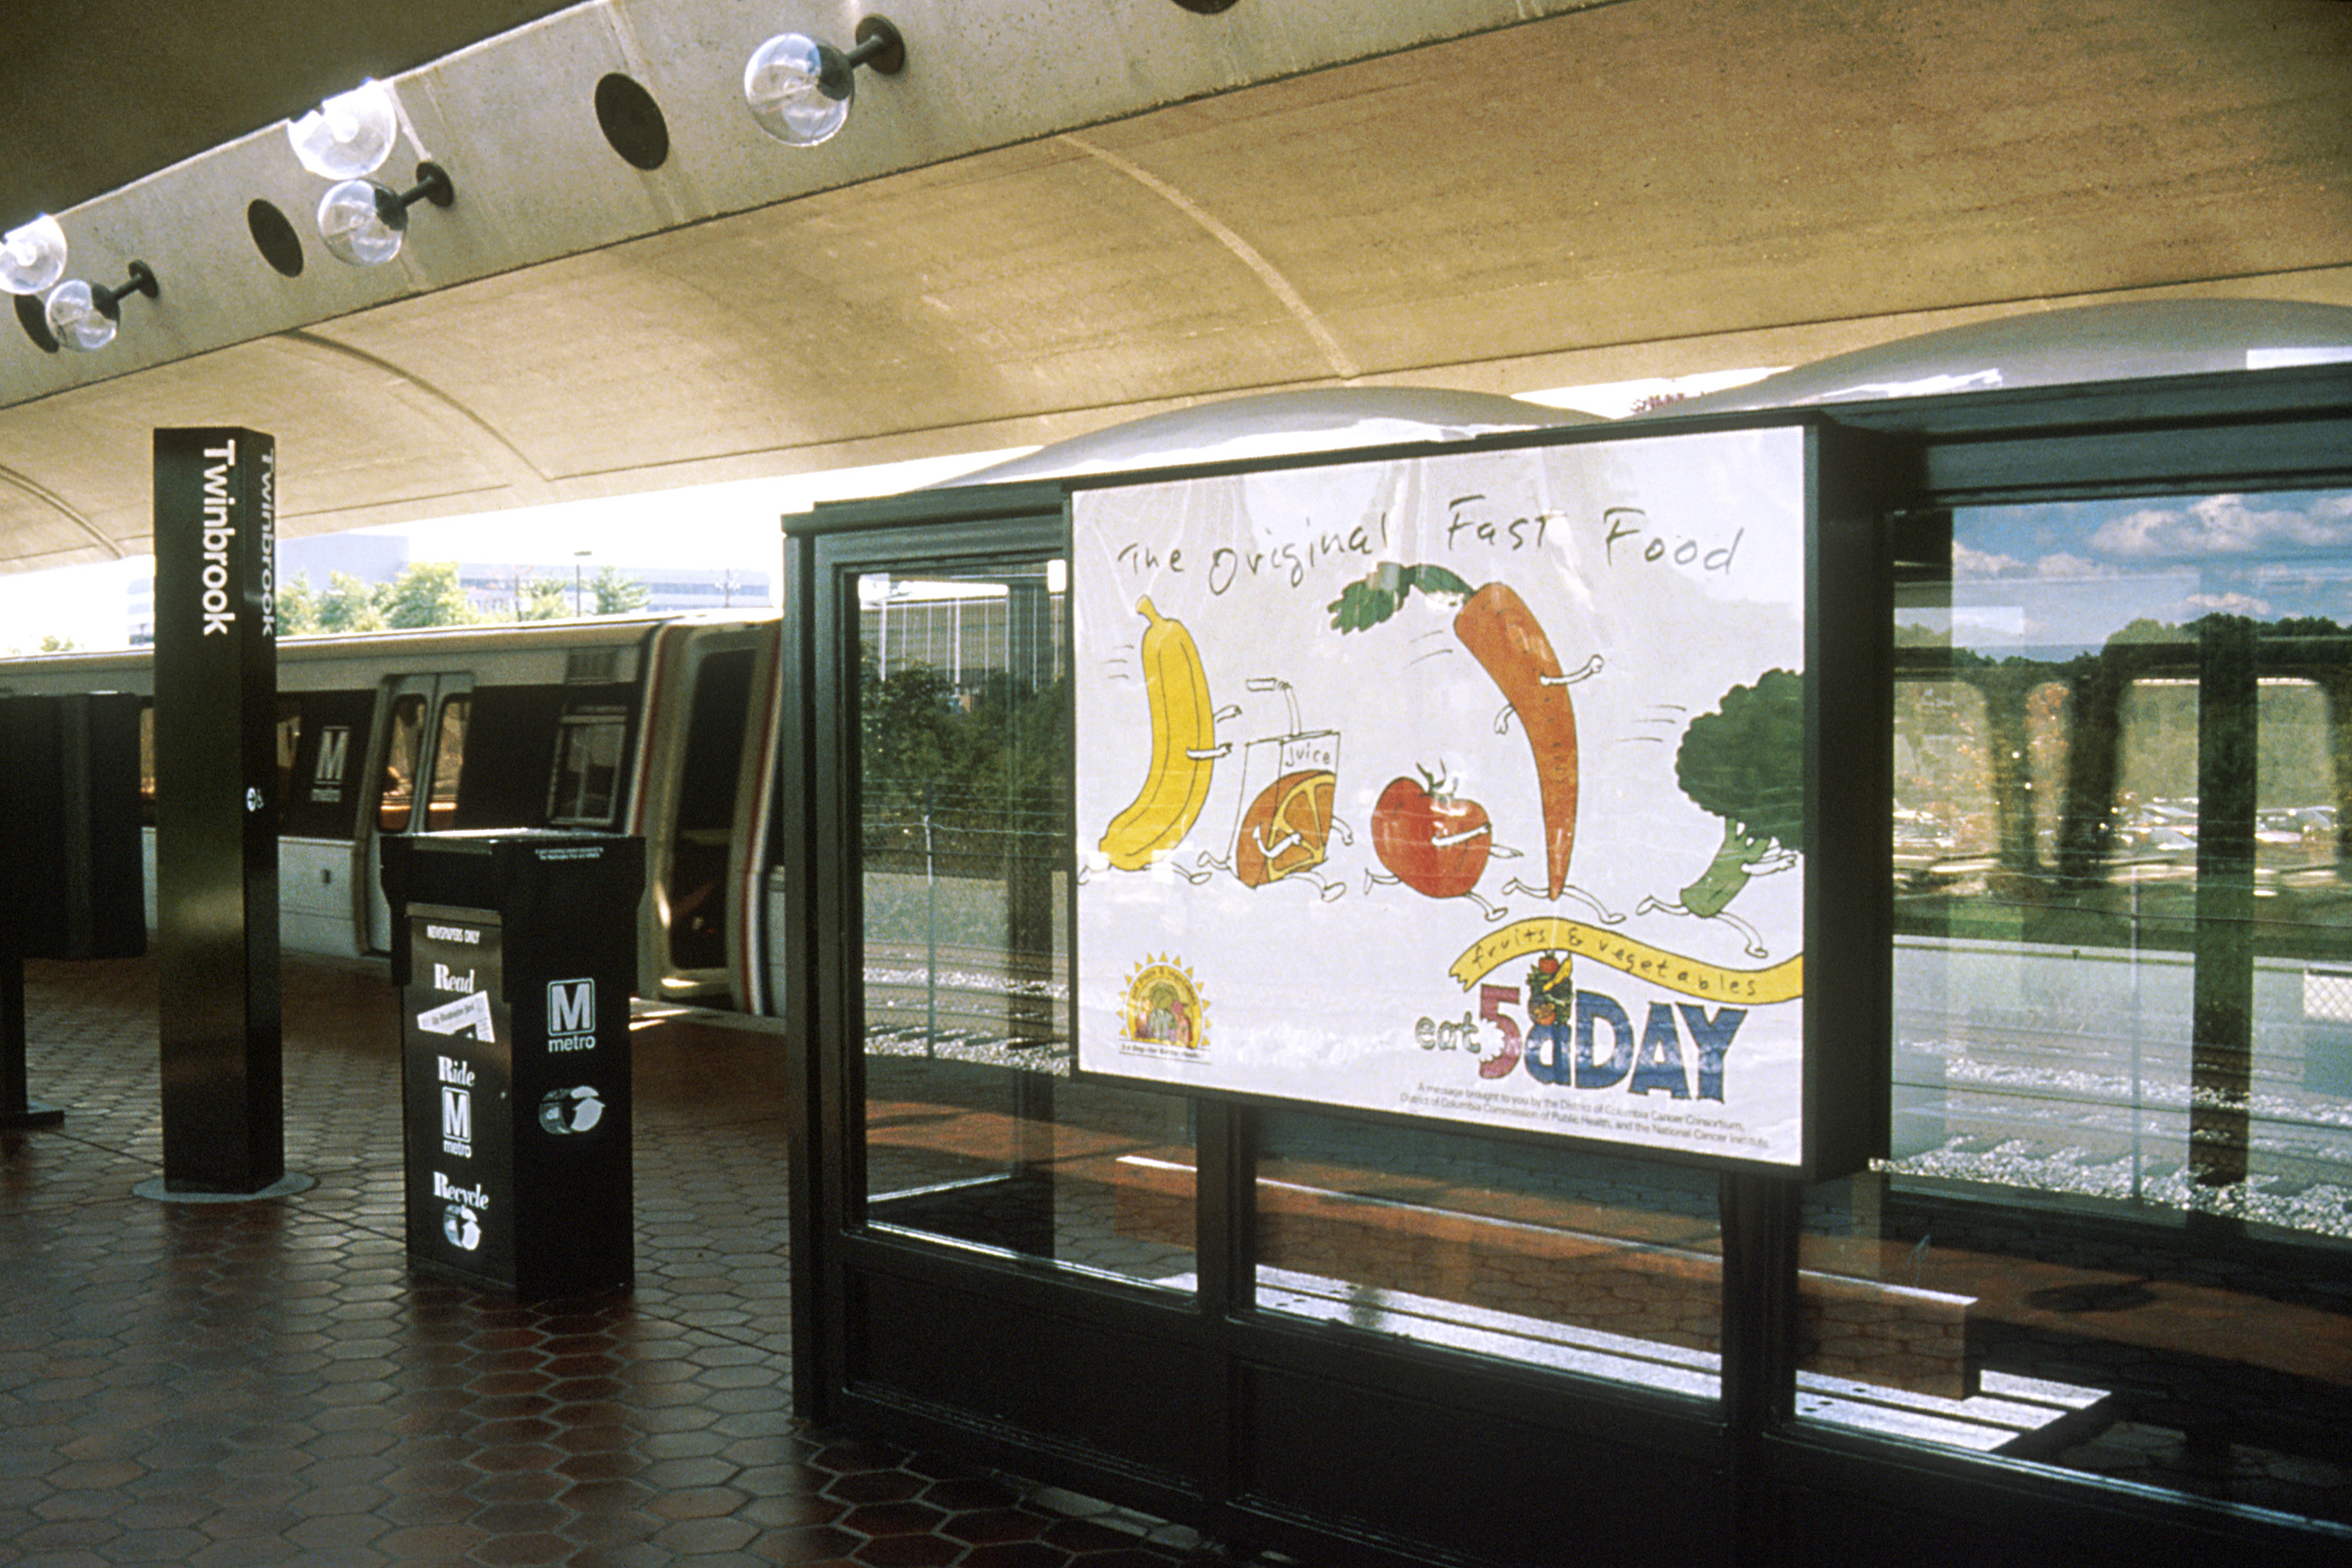 file 5 a day advertisement at the nih metro